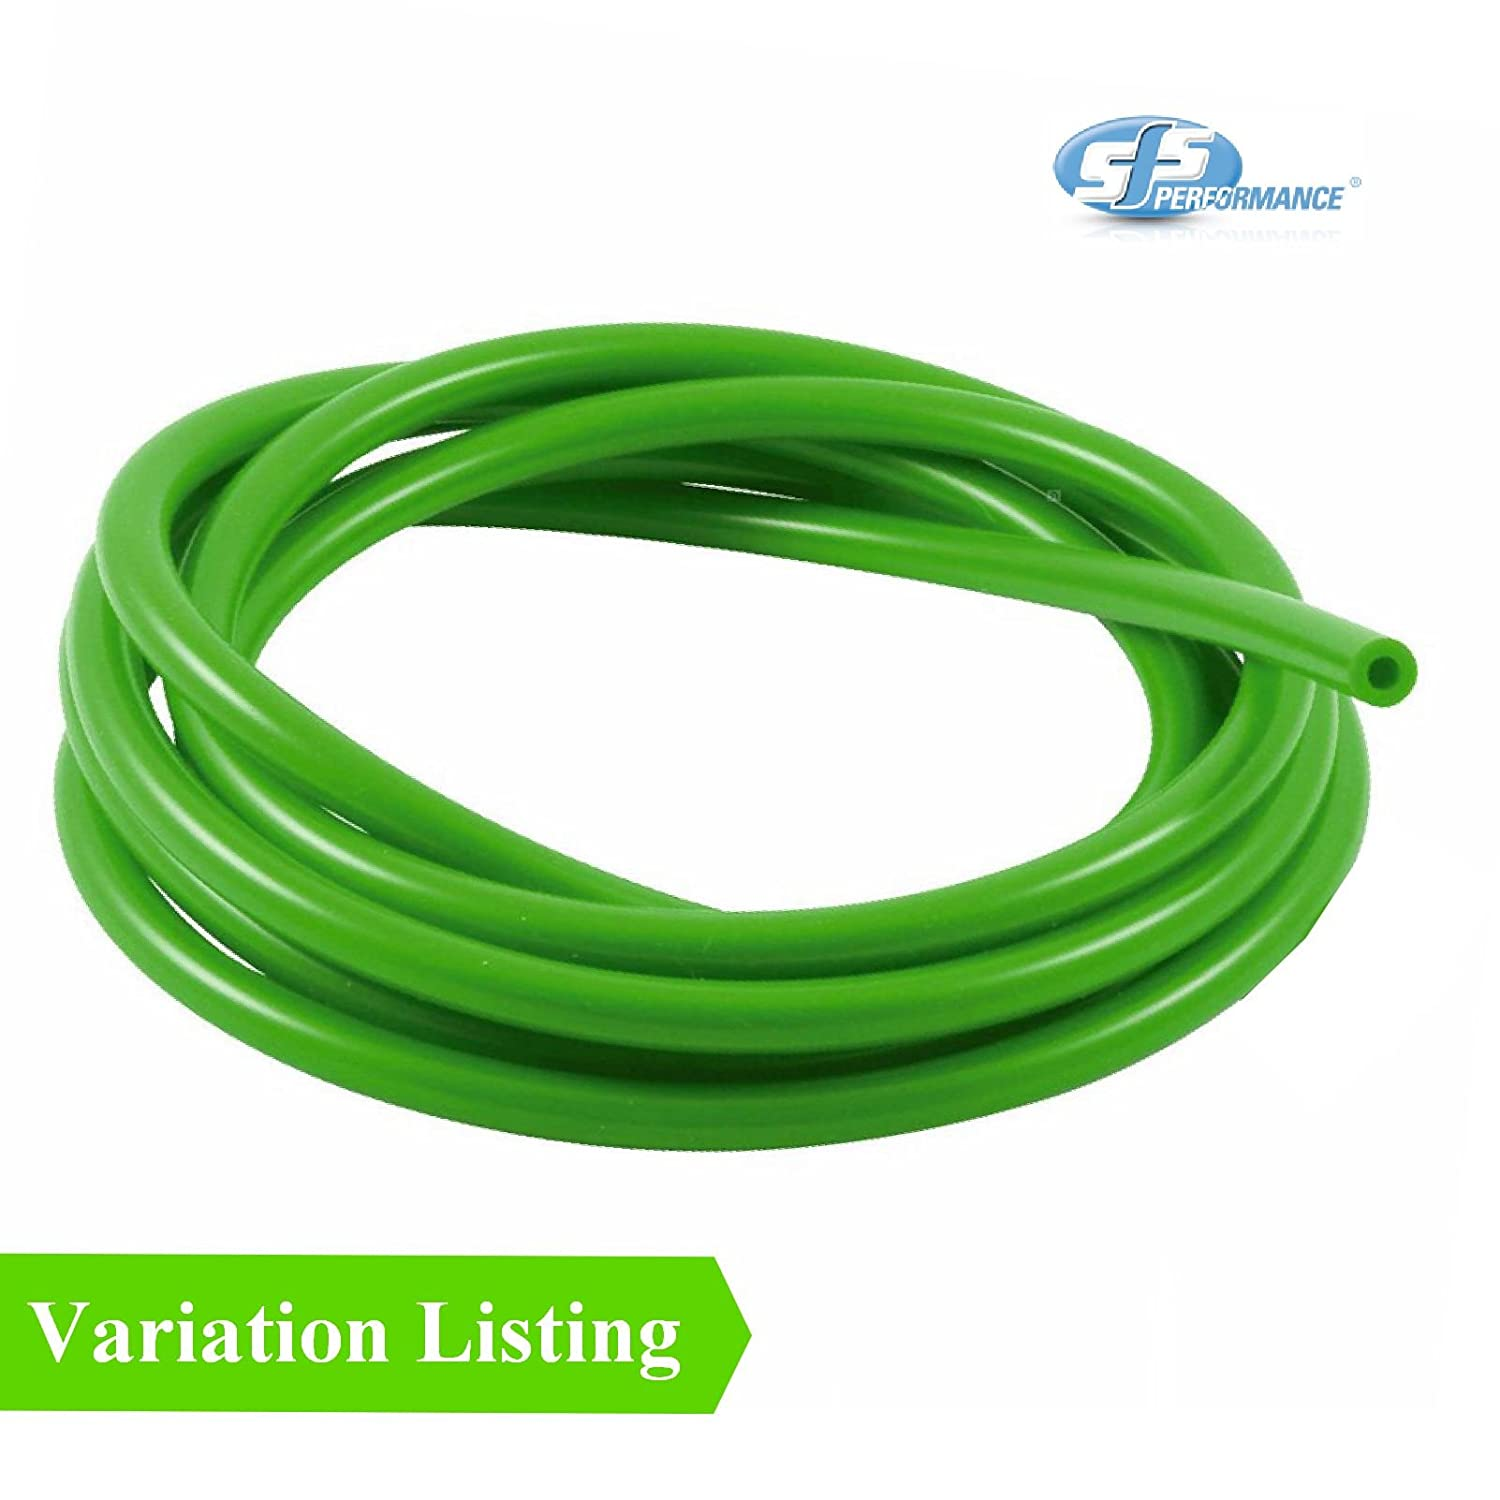 1 Metre Green Silicone Vacuum Hose Turbo Rubber Tube Air Water Pipe 3mm